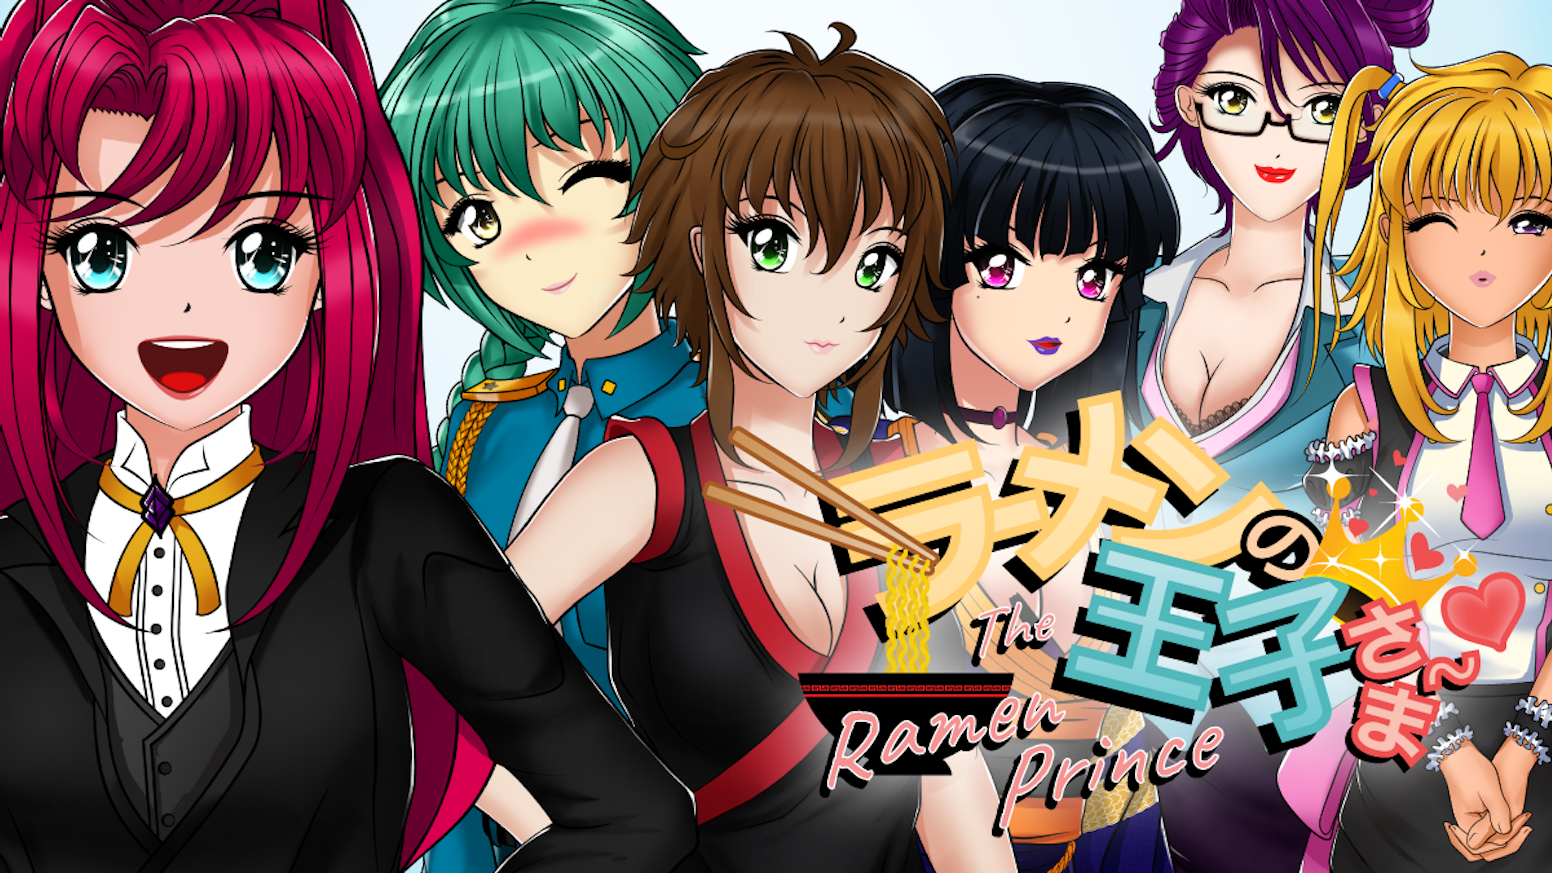 A multi-route mature visual novel with 10 female love interests to choose from, awesome artwork and compelling storylines!